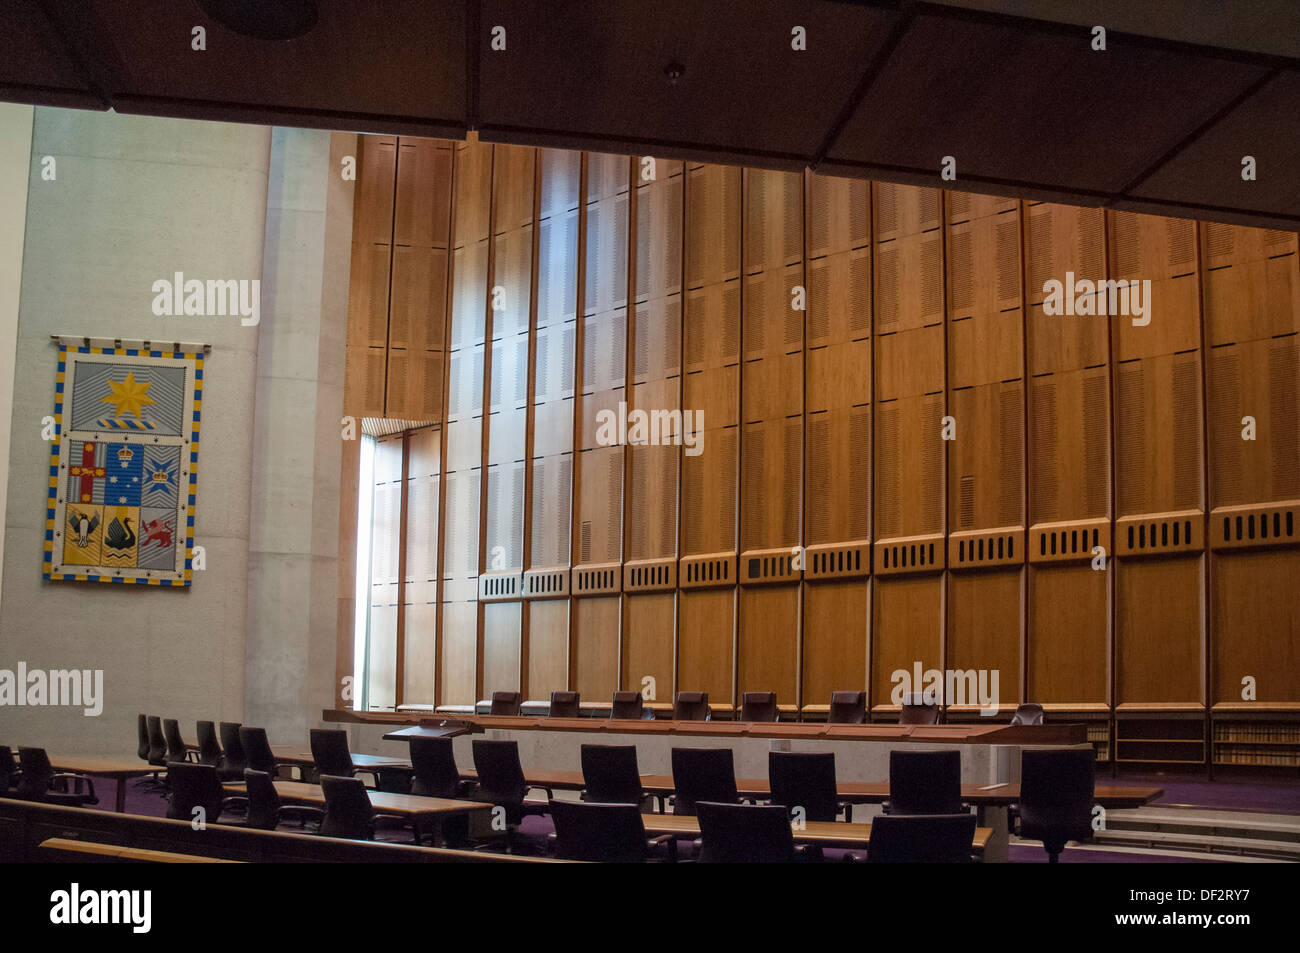 Courtroom in the High Court of Australia at Canberra - Stock Image